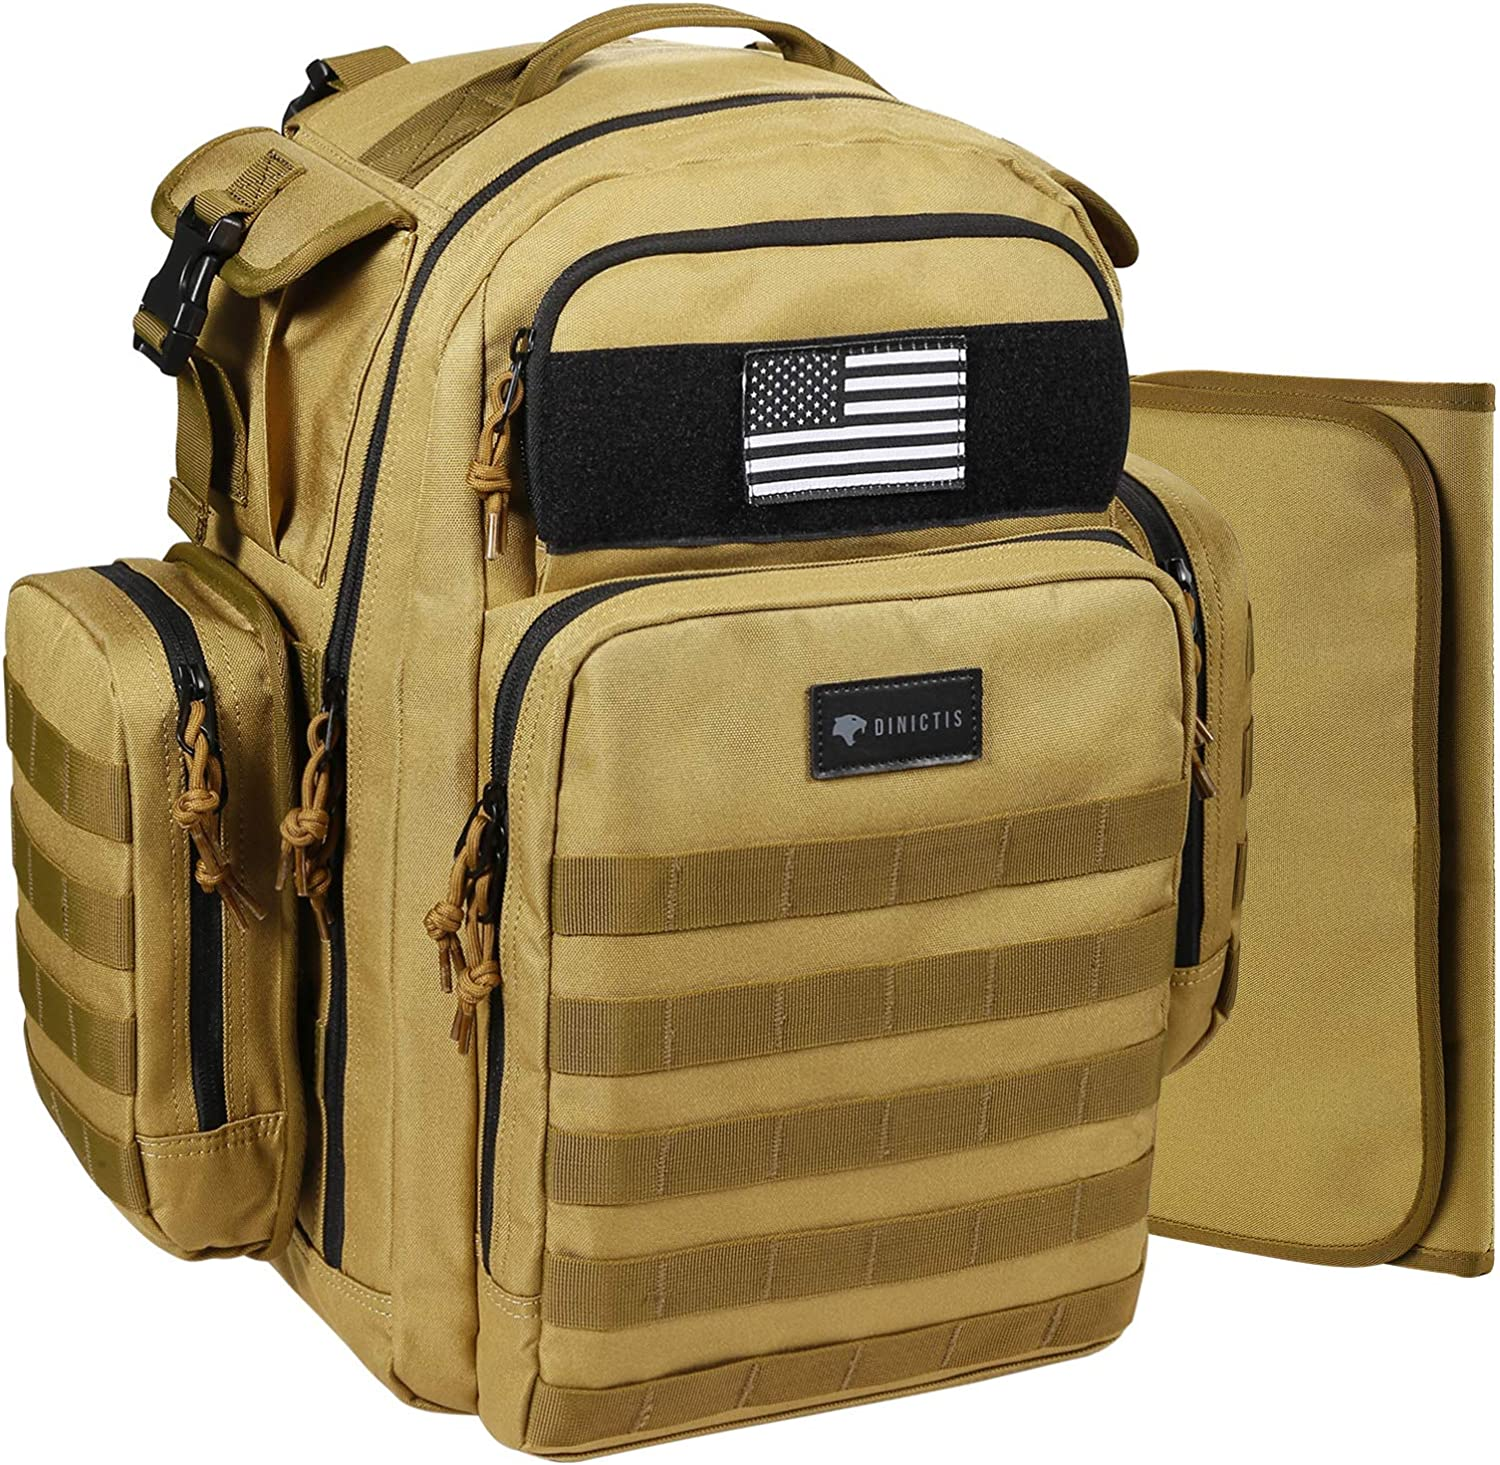 Dinictis 40L Diaper Bag Backpack for Dad,Tactical Travel Baby Nappy Bags for Men,Baby Accessories for Daddy